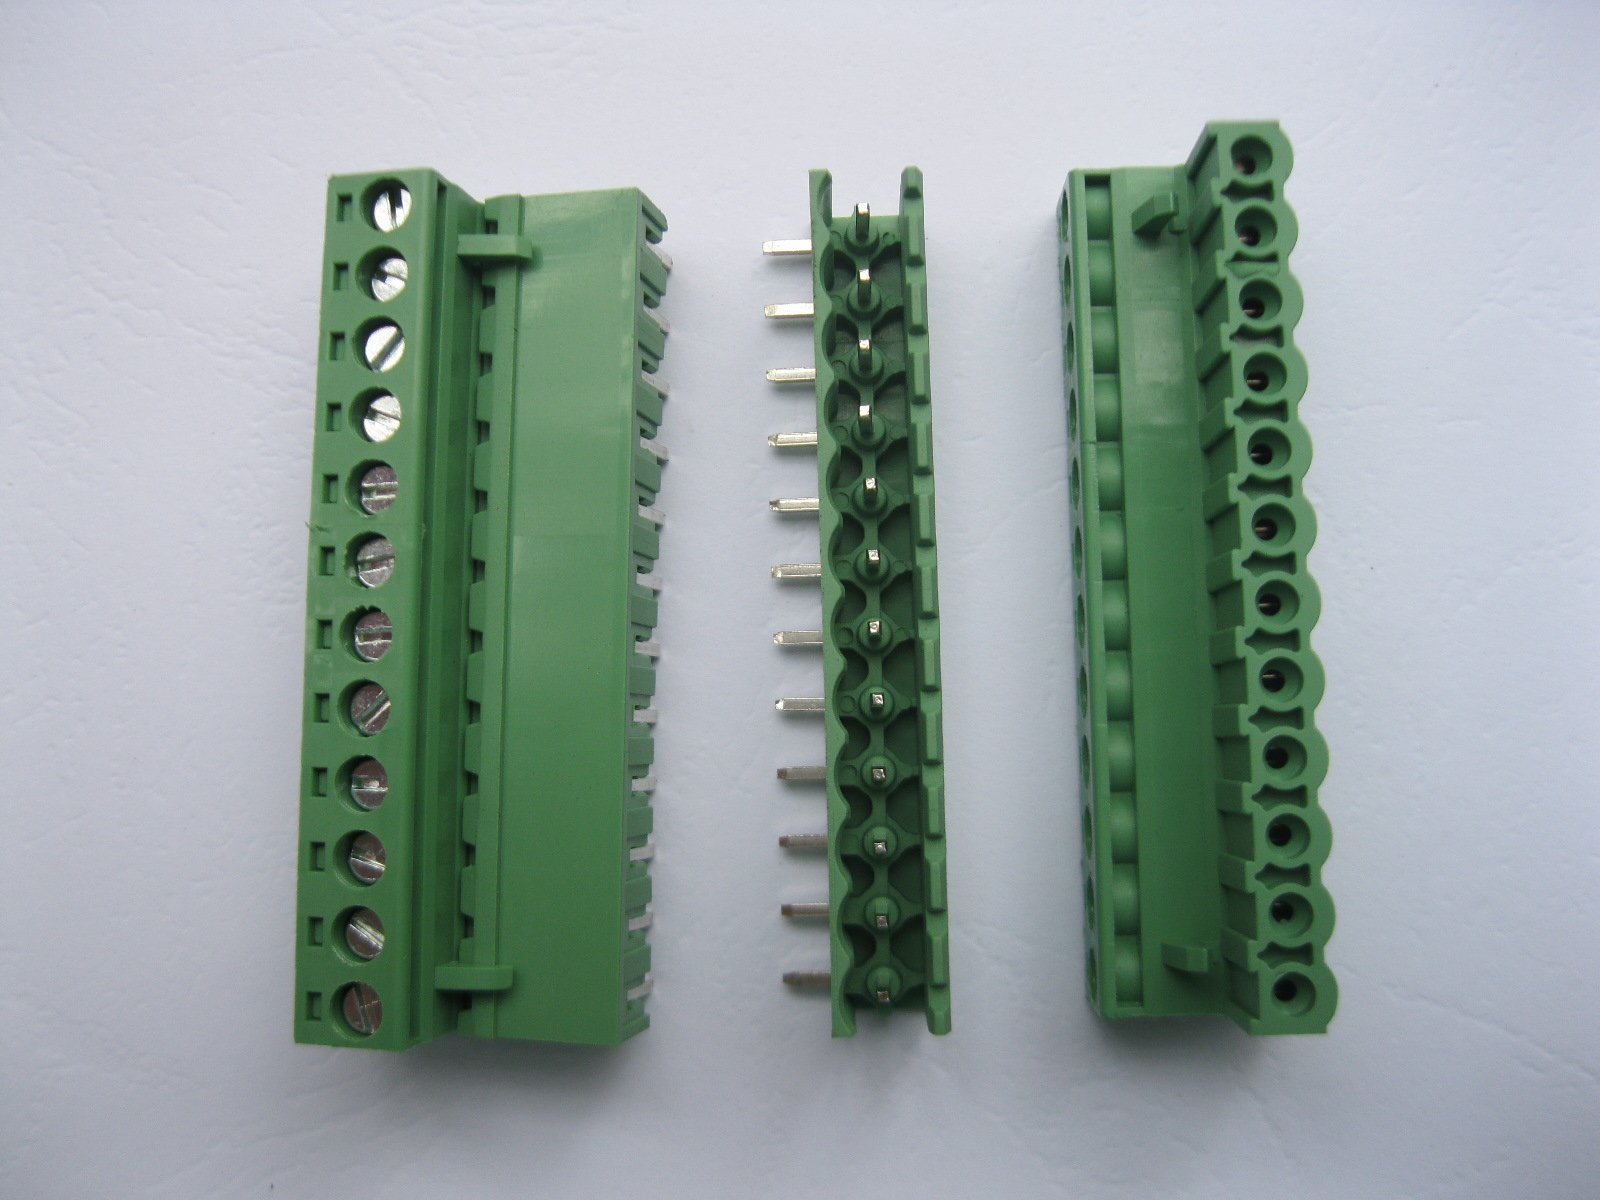 20 Pcs Angle 12 pin/way Pitch 5.08mm Screw Terminal Block Connector Green Color Pluggable Type With Angle pin